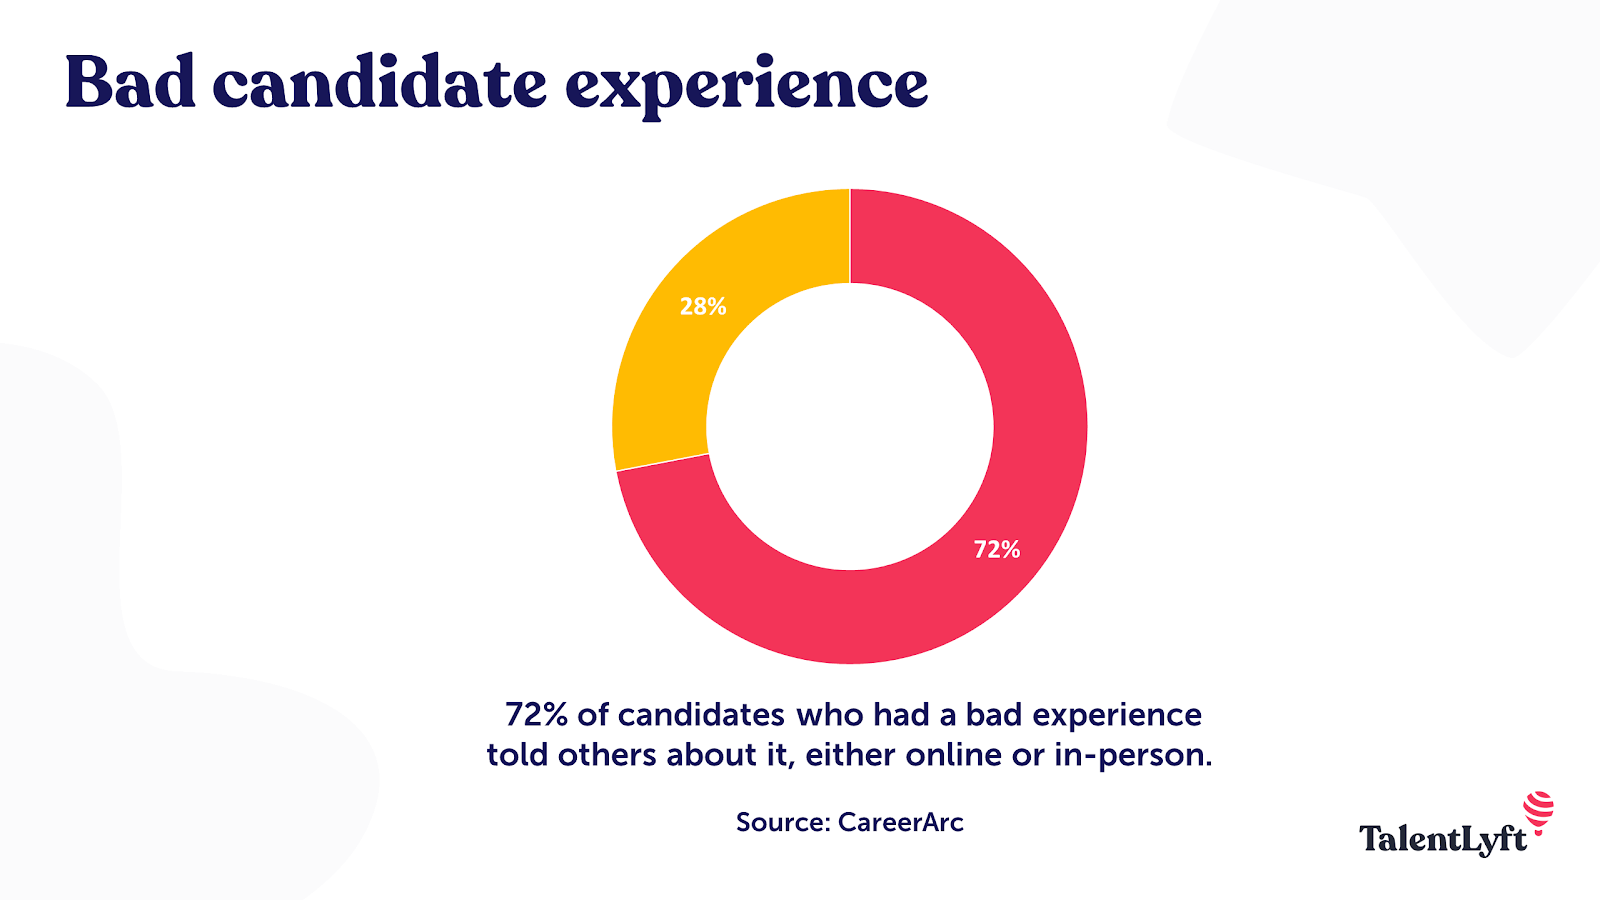 Rejected candidates and importance of bad candidate experience